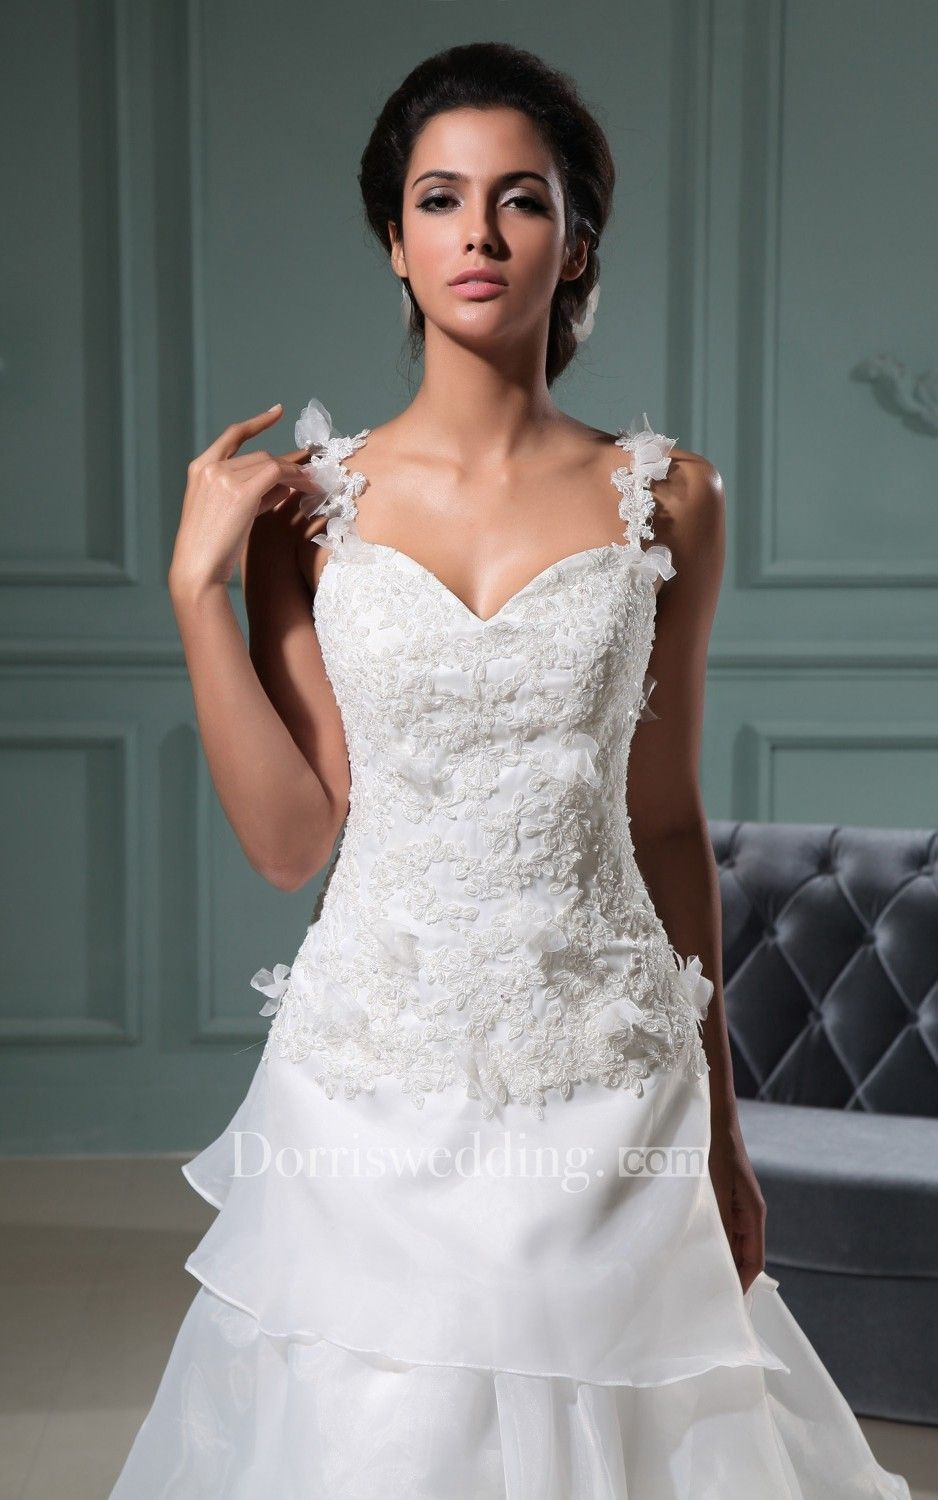 Frontsplit sweetheart dress with ruffles and spaghetti straps